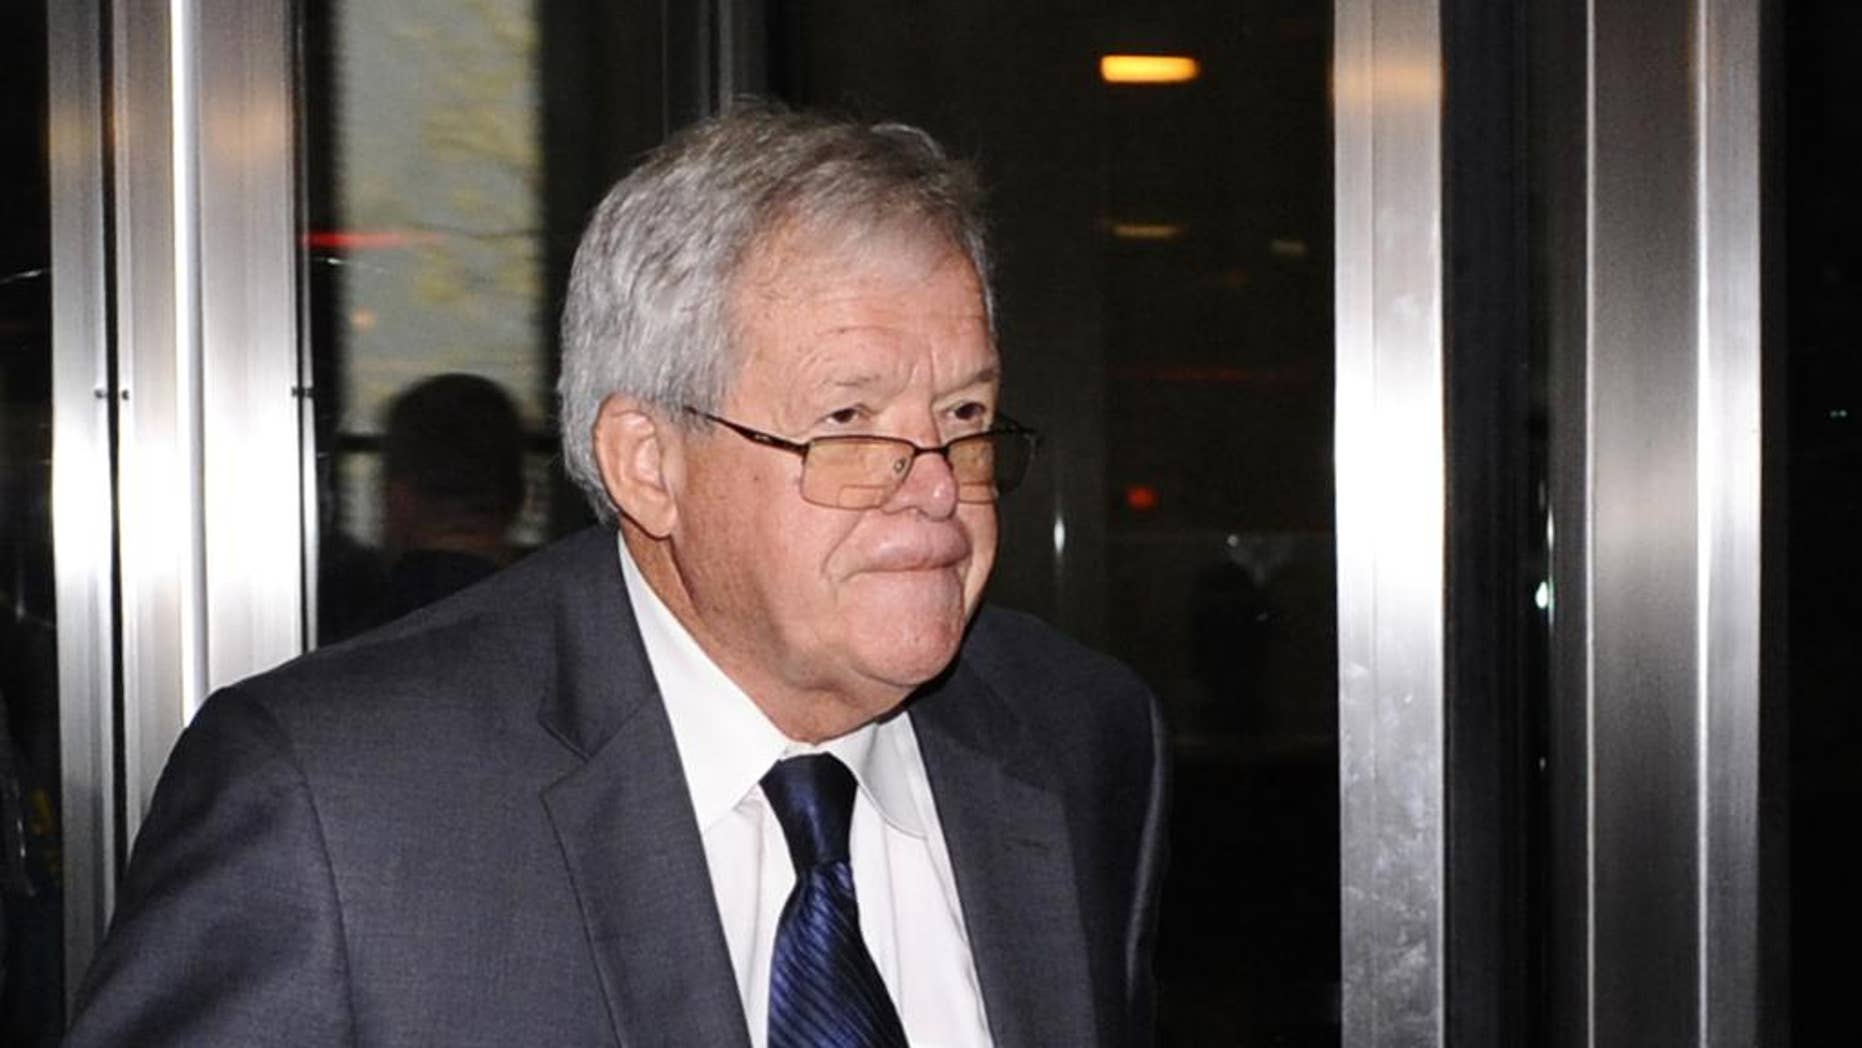 FILE - In this Oct. 28, 2015 file photo, former U.S. House Speaker Dennis Hastert leaves the federal courthouse in Chicago after a hearing in his hush-money case. Prosecutors said Wednesday, April 13, 2016, they expect one person who accuses Hastert of sexual abuse to speak at his April 27, 2016 sentencing and the judge has indicated that he wants to consider that Hastert lied to federal authorities. (AP Photo/Matt Marton, File)